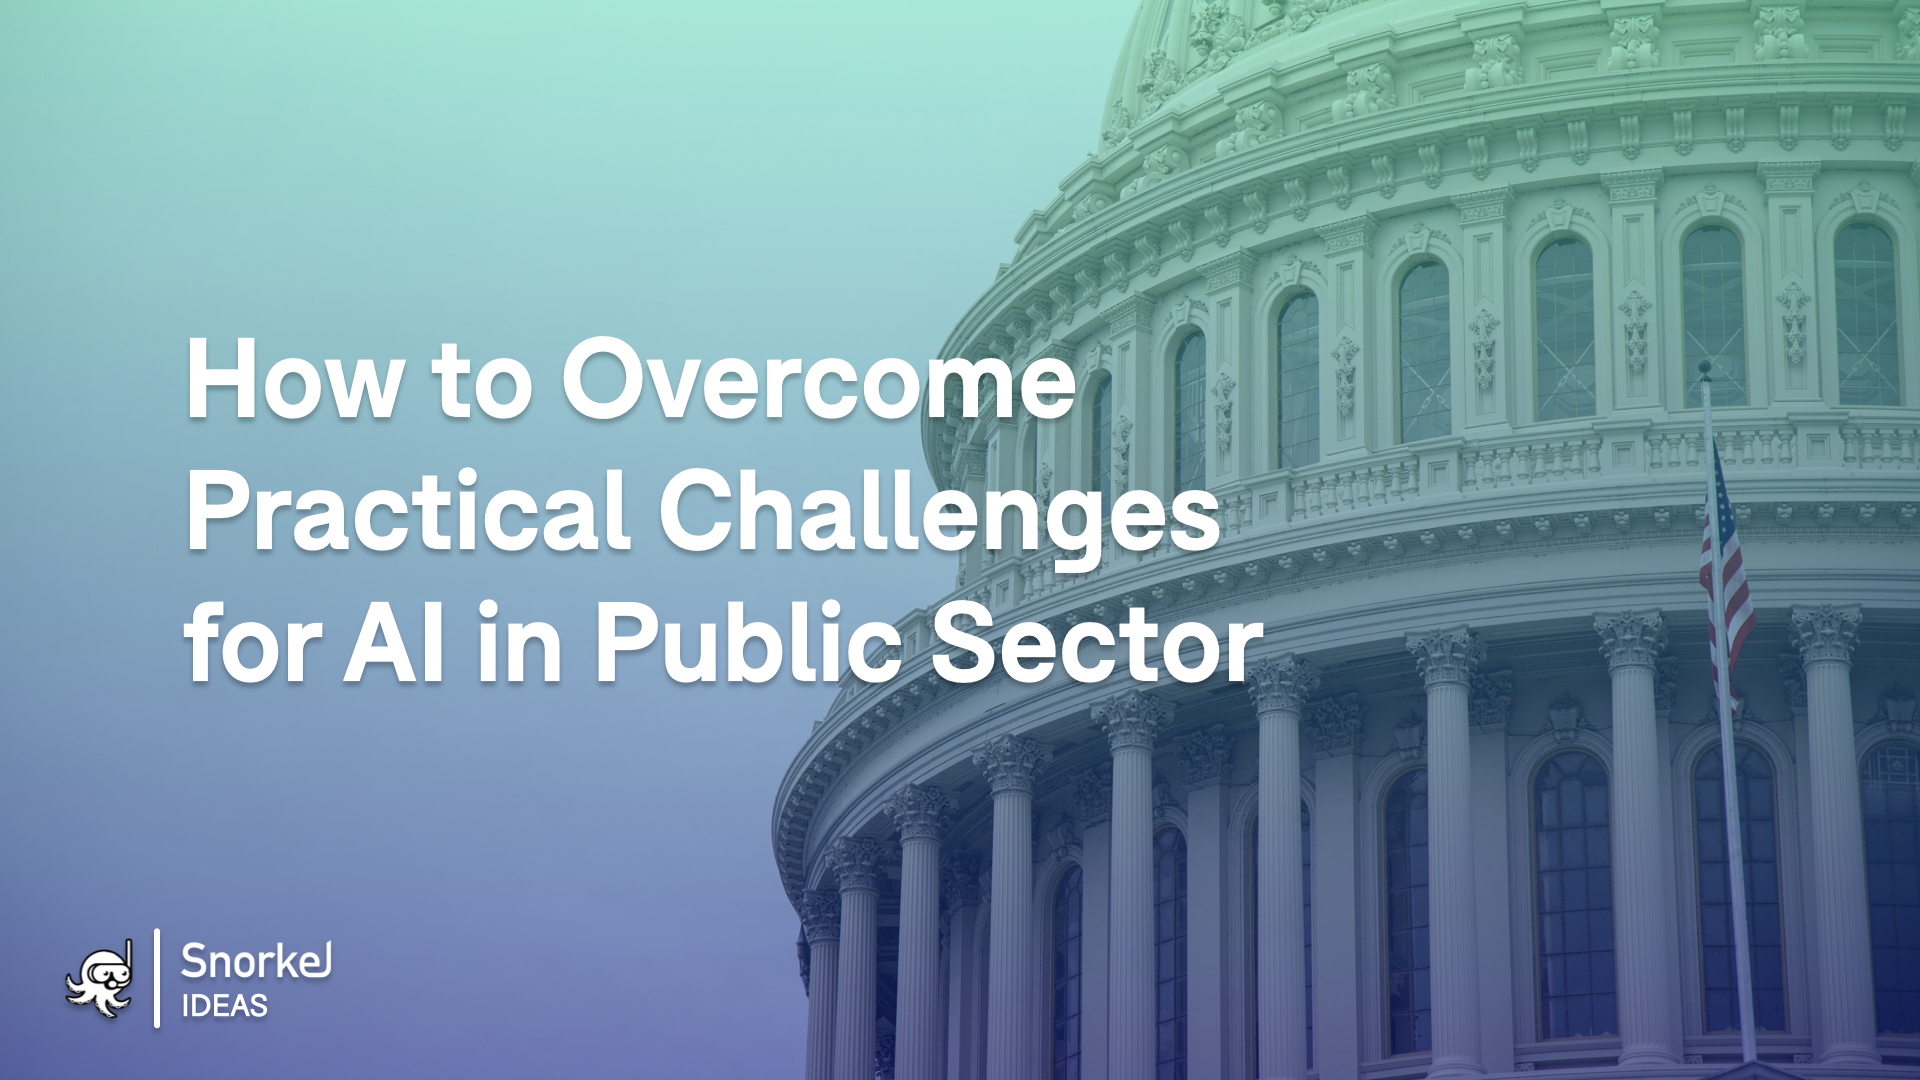 How to Overcome Practical Challenges for AI in Public Sector